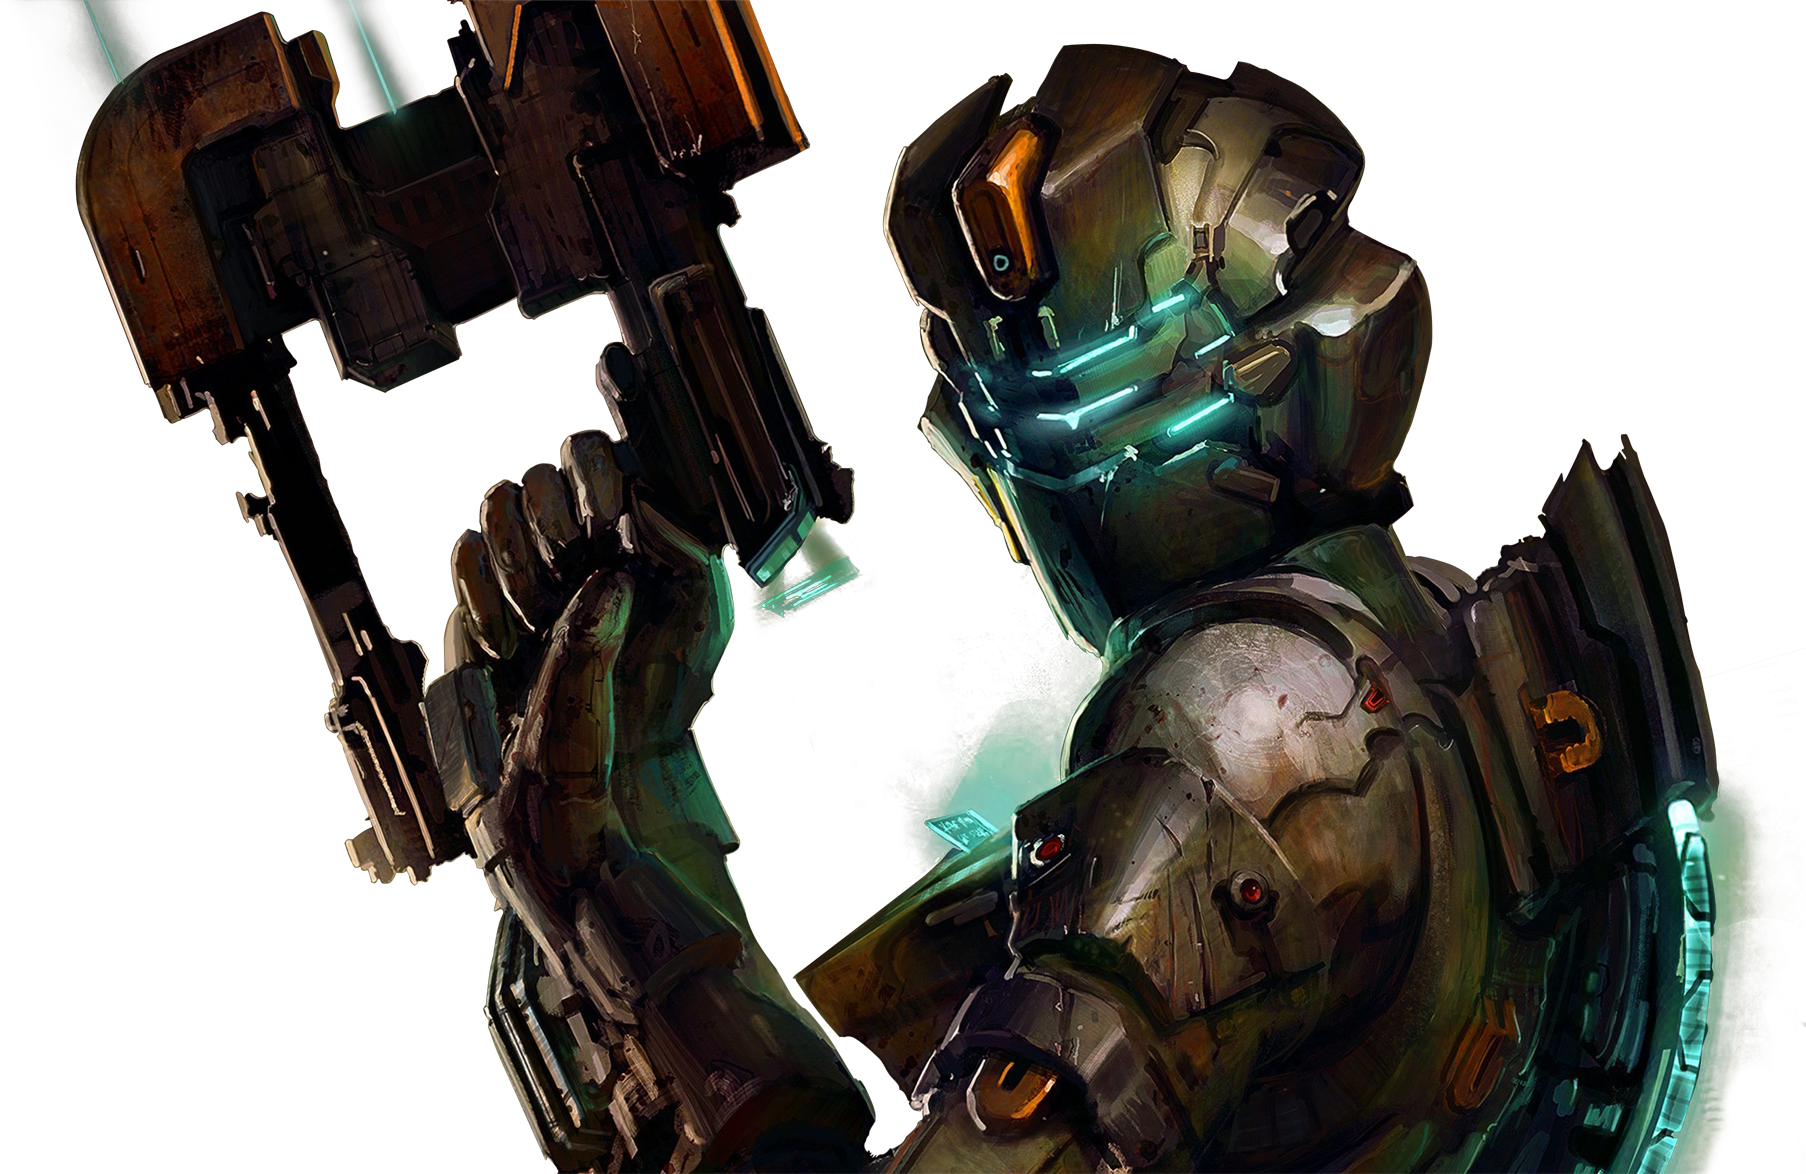 Dead space png. Image unknown rig wiki